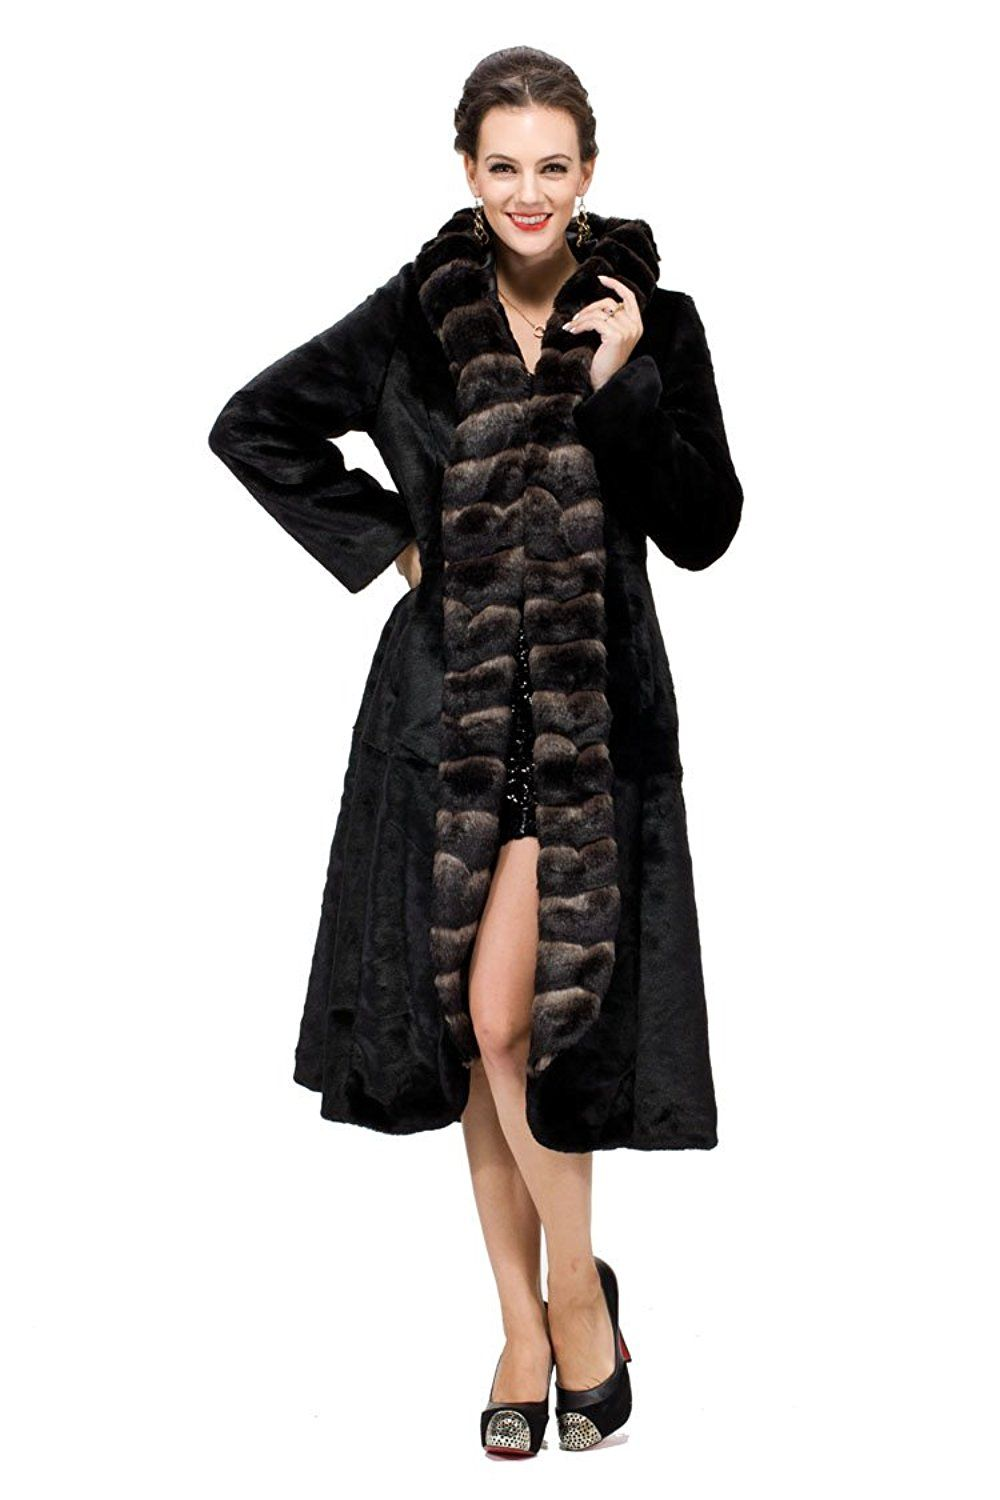 Adelaqueen Women's Sheared Mink Faux Fur Coat Hooded With Faux Chinchilla Trim at Amazon Women's Coats Shop